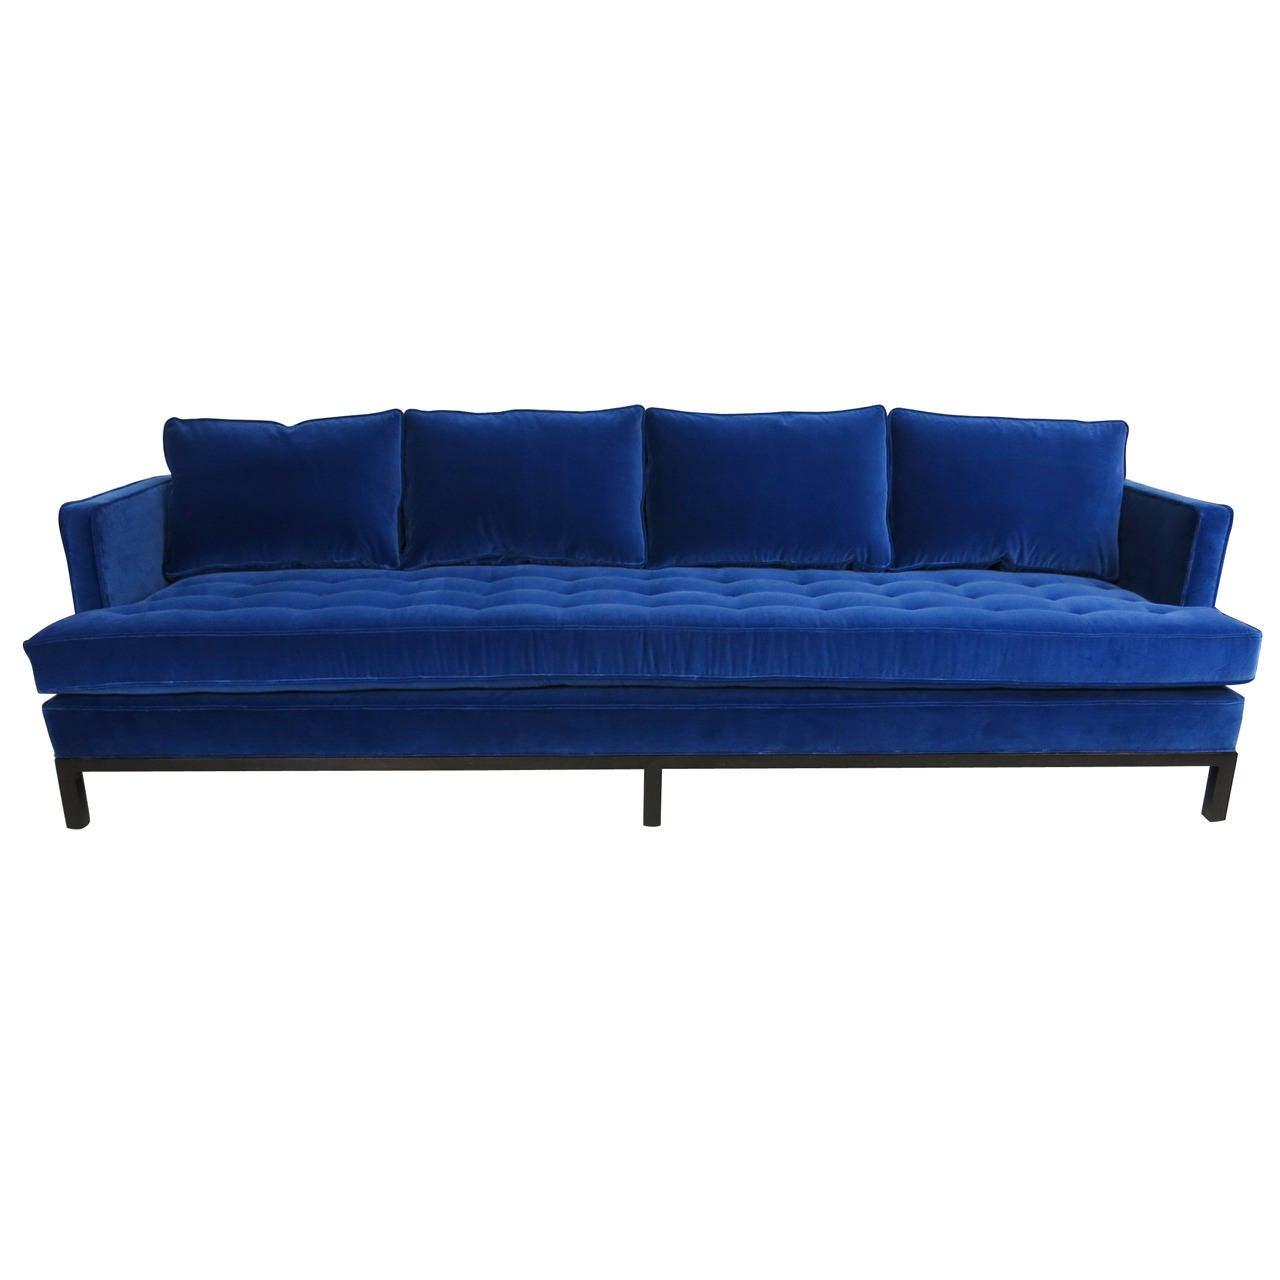 italian shelter arm sofa large purple throws harvey probber style in cerulean blue velvet